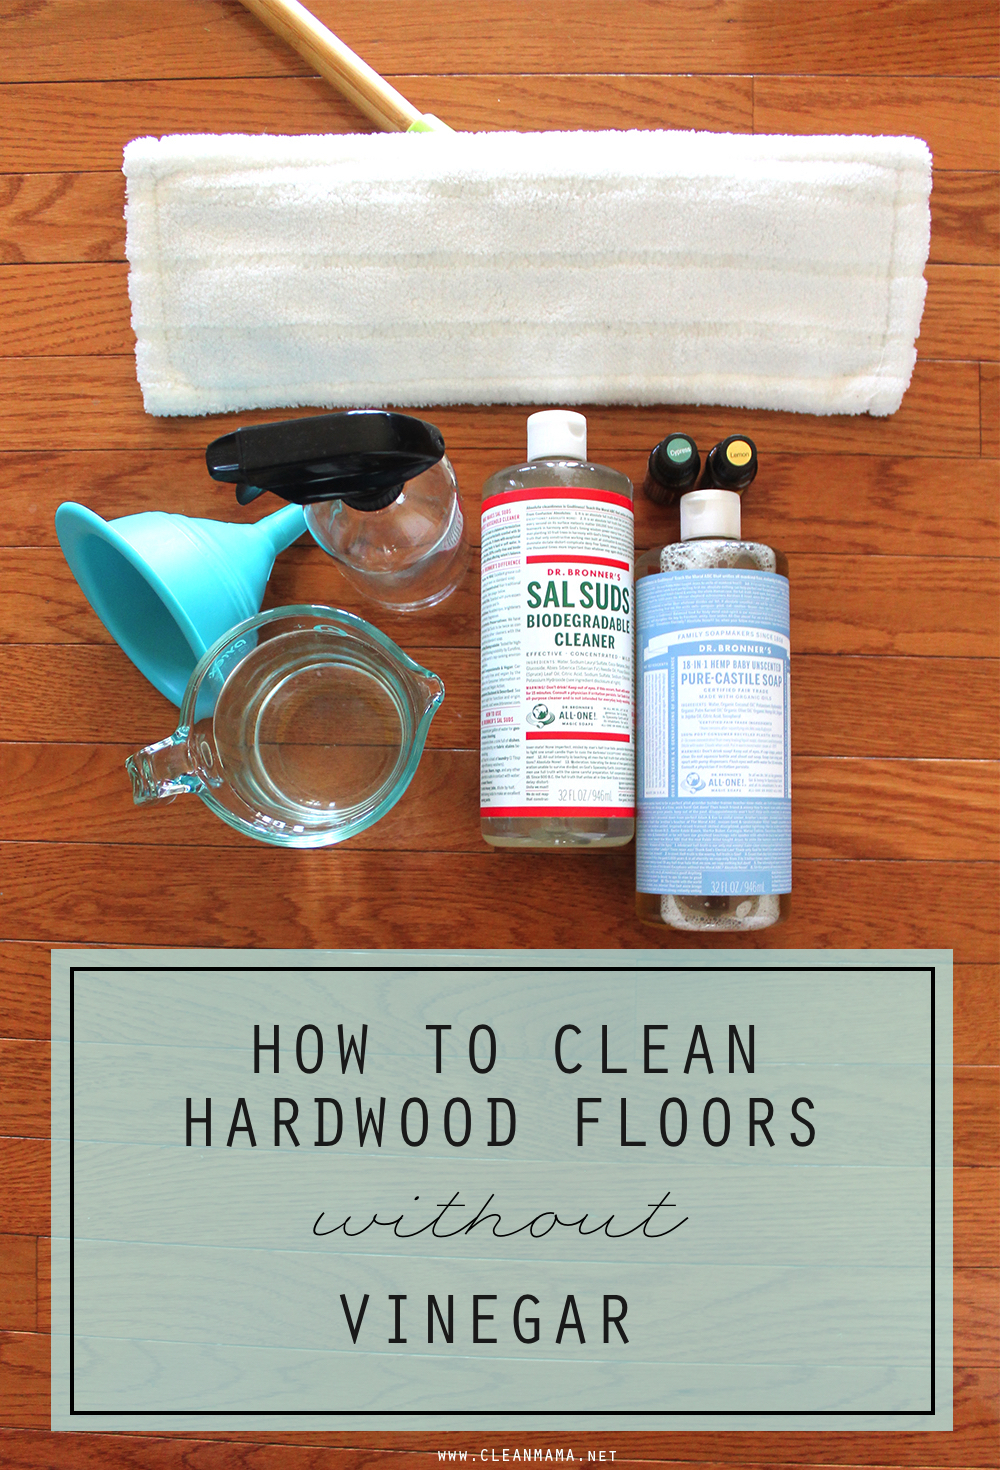 Clean Hardwood Floors WITHOUT Vinegar